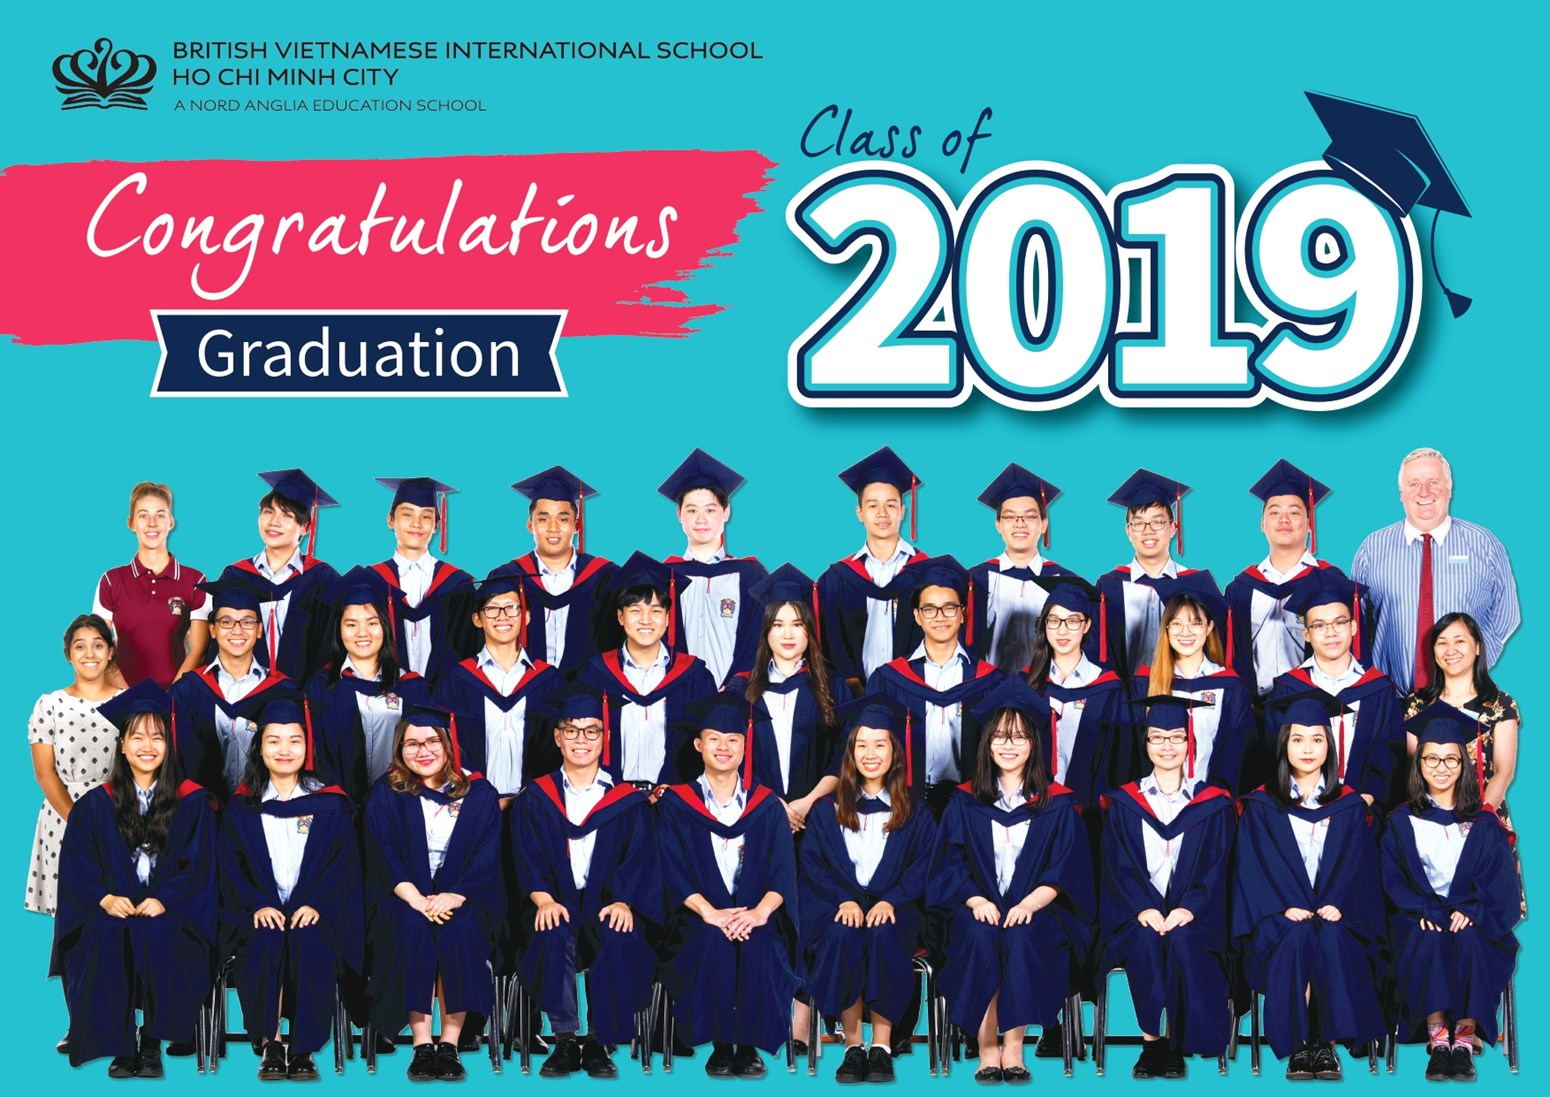 BVIS HCMC Graduation Ceremony 2019